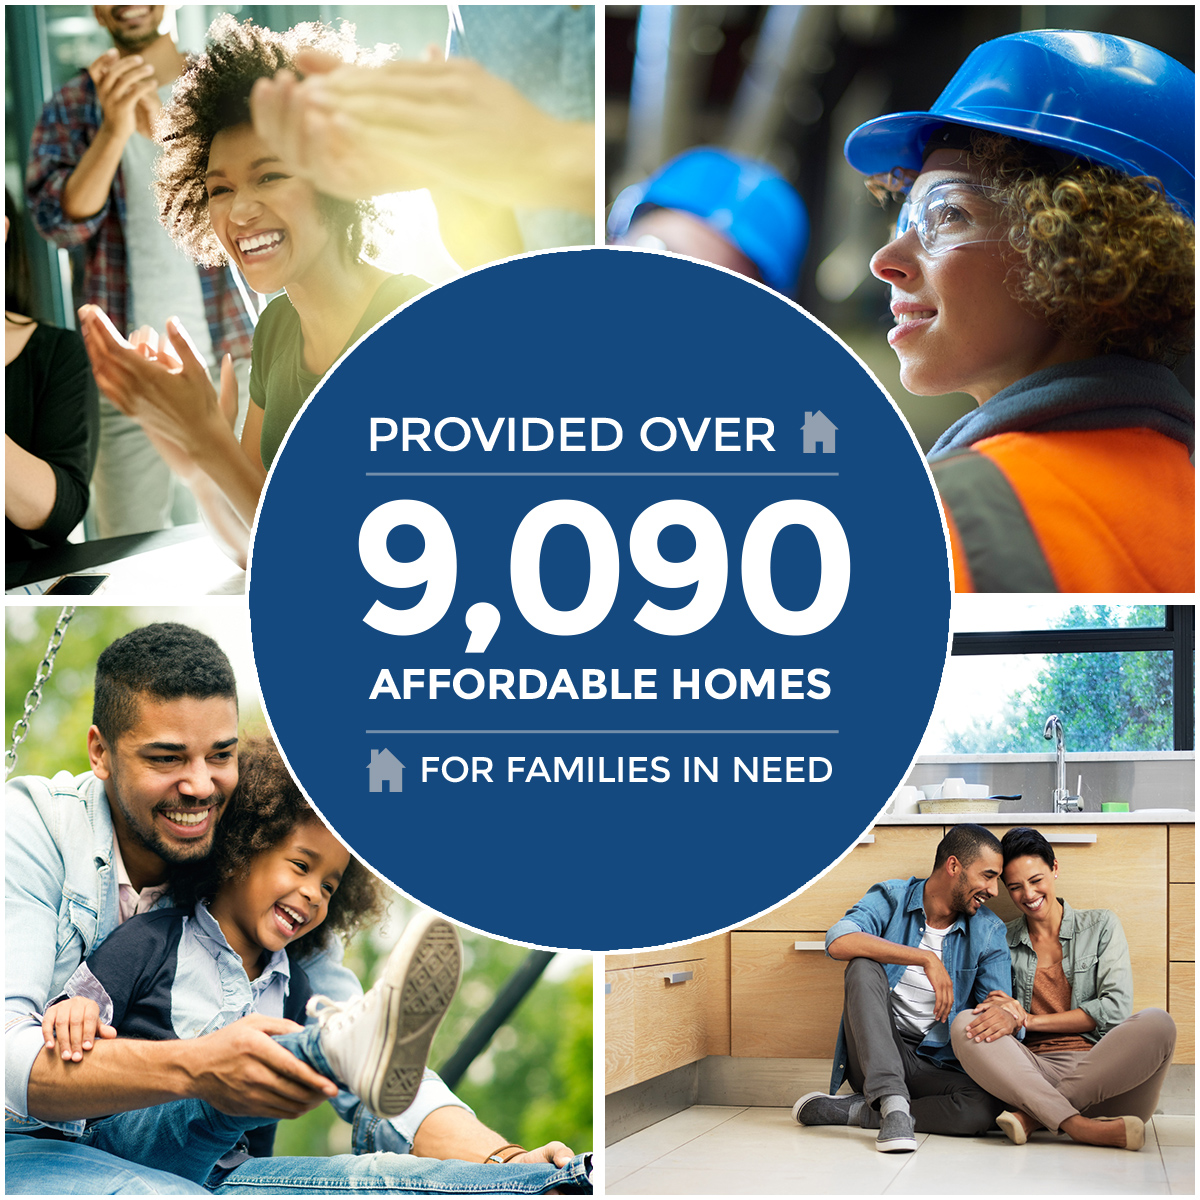 Provided over 4100 affordable homes for families in need.